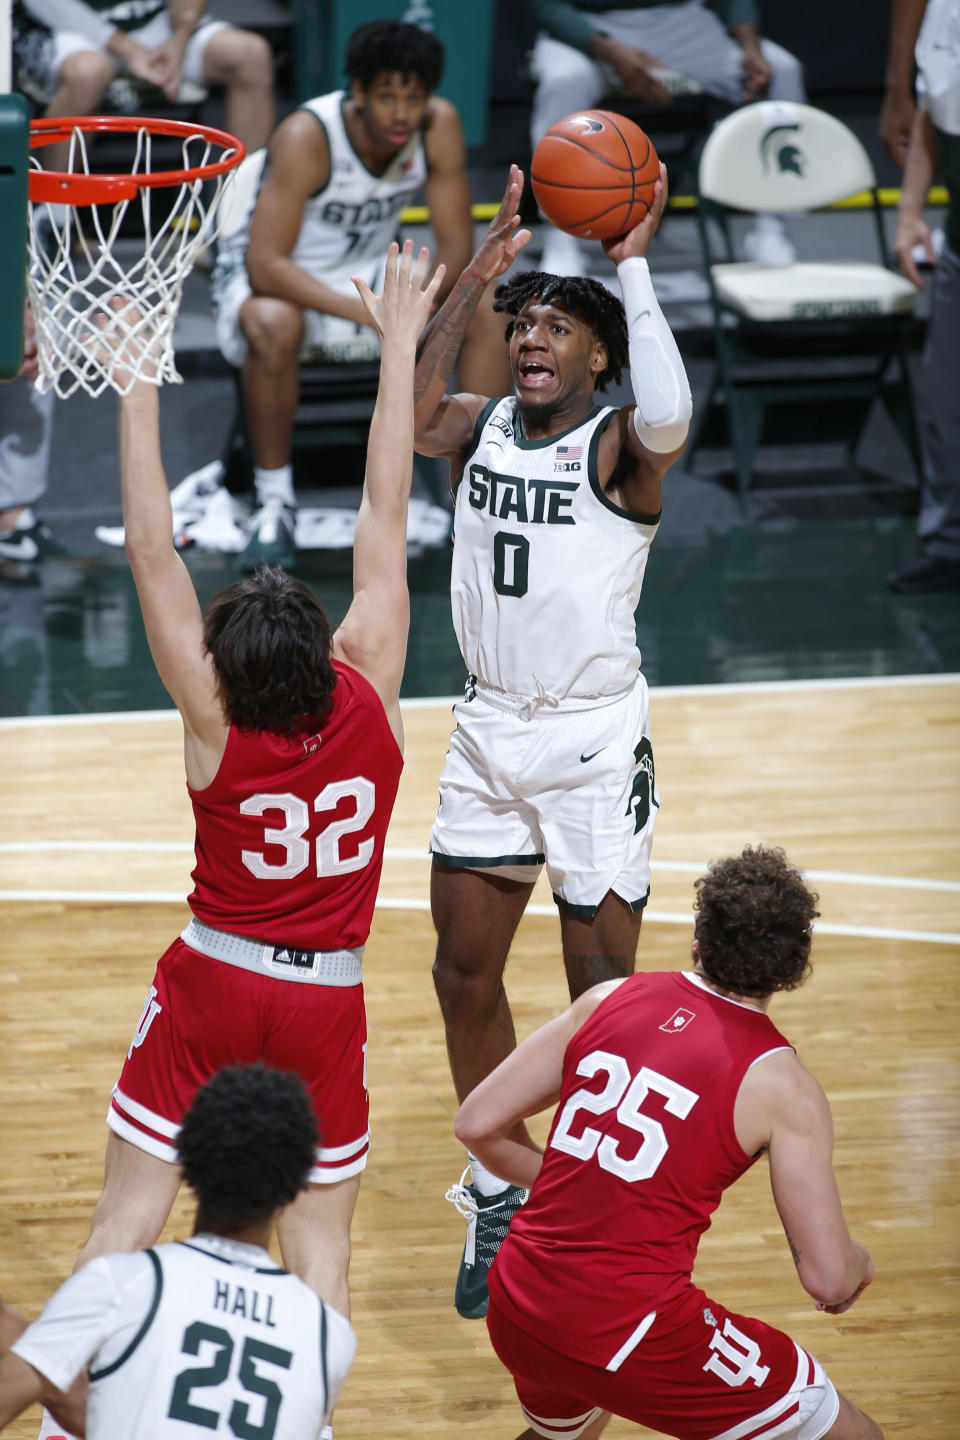 Michigan State's Aaron Henry (0) shoots against Indiana's Trey Galloway (32) and Race Thompson (25) during the second half of an NCAA college basketball game Tuesday, March 2, 2021, in East Lansing, Mich. Michigan State won 64-58. (AP Photo/Al Goldis)